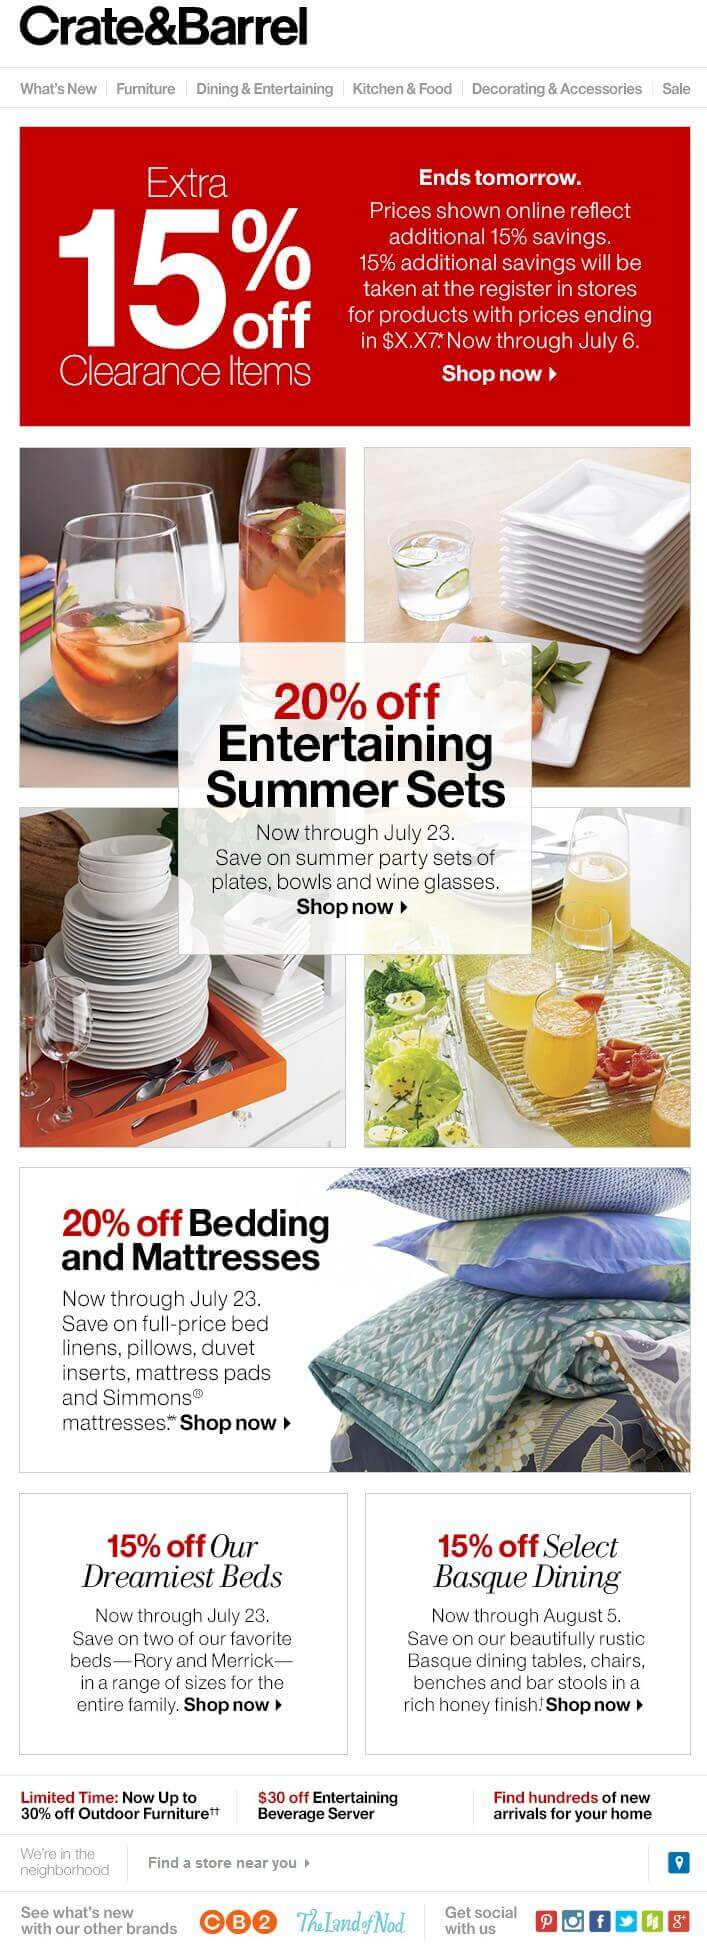 Promotional business email sample of Crate and Barrel